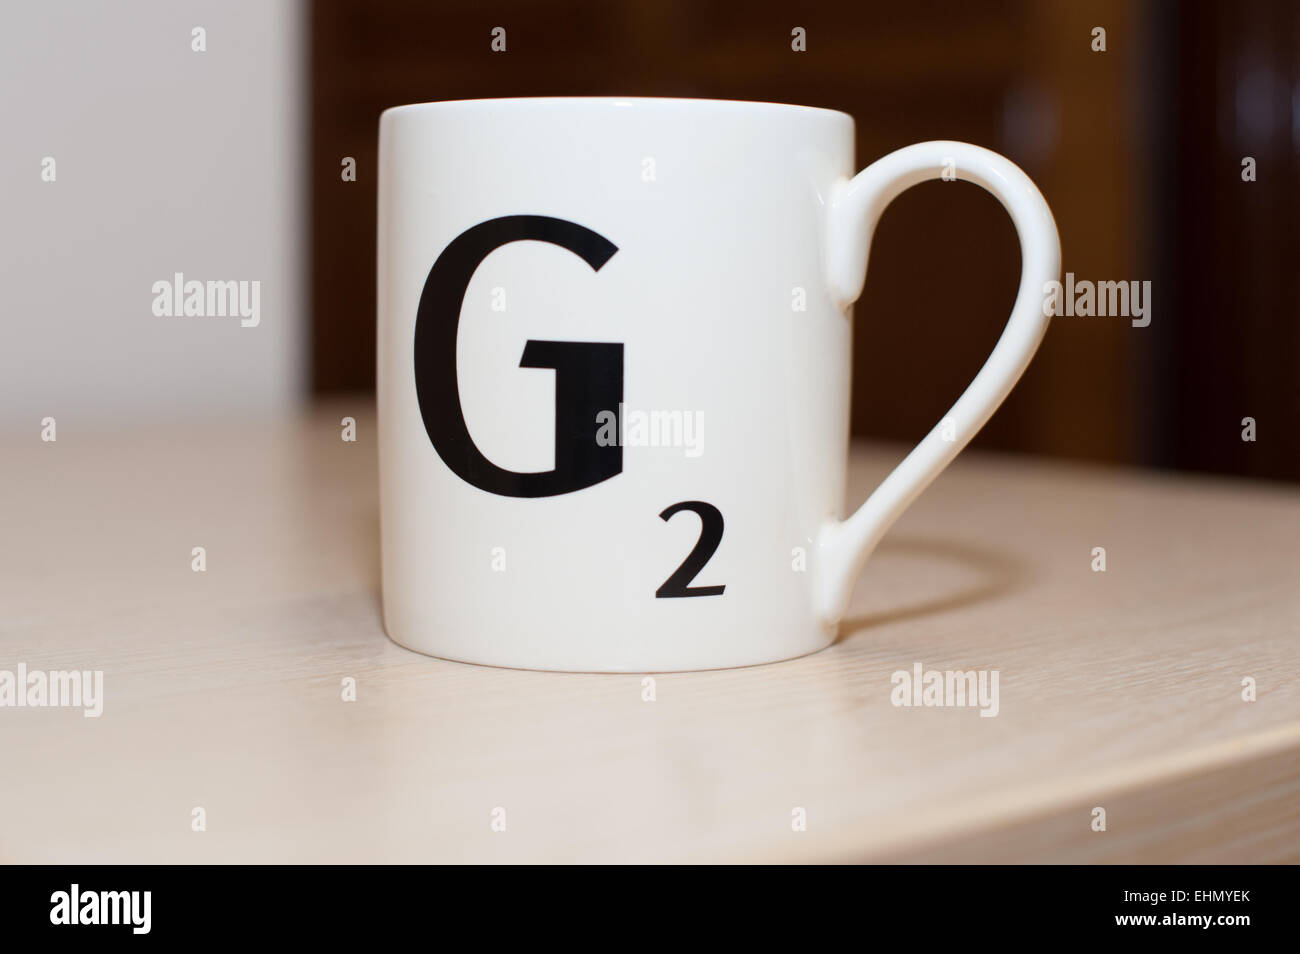 A Scrabble letter , a capital G with two points on a white mug  of tea or coffee during a work break on a table - Stock Image